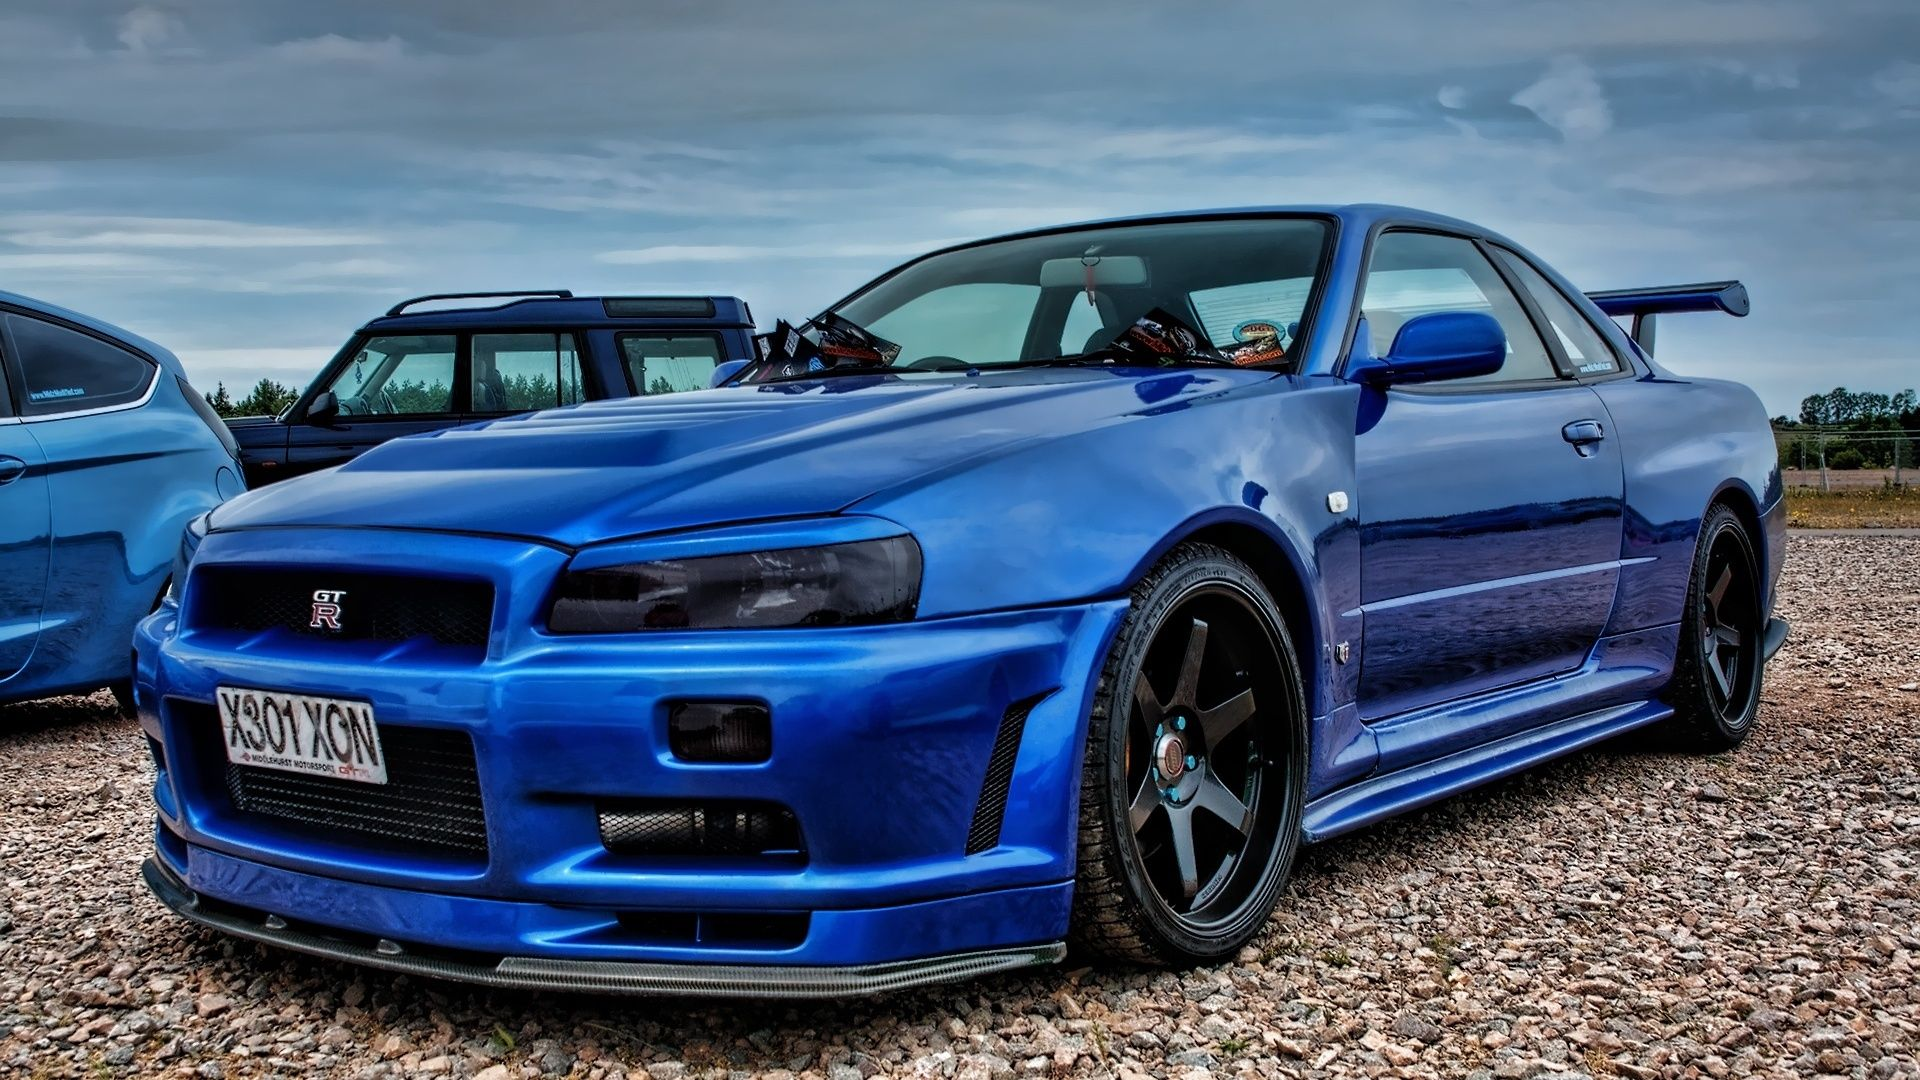 image result for gtr skyline r34 | rd | library | pinterest